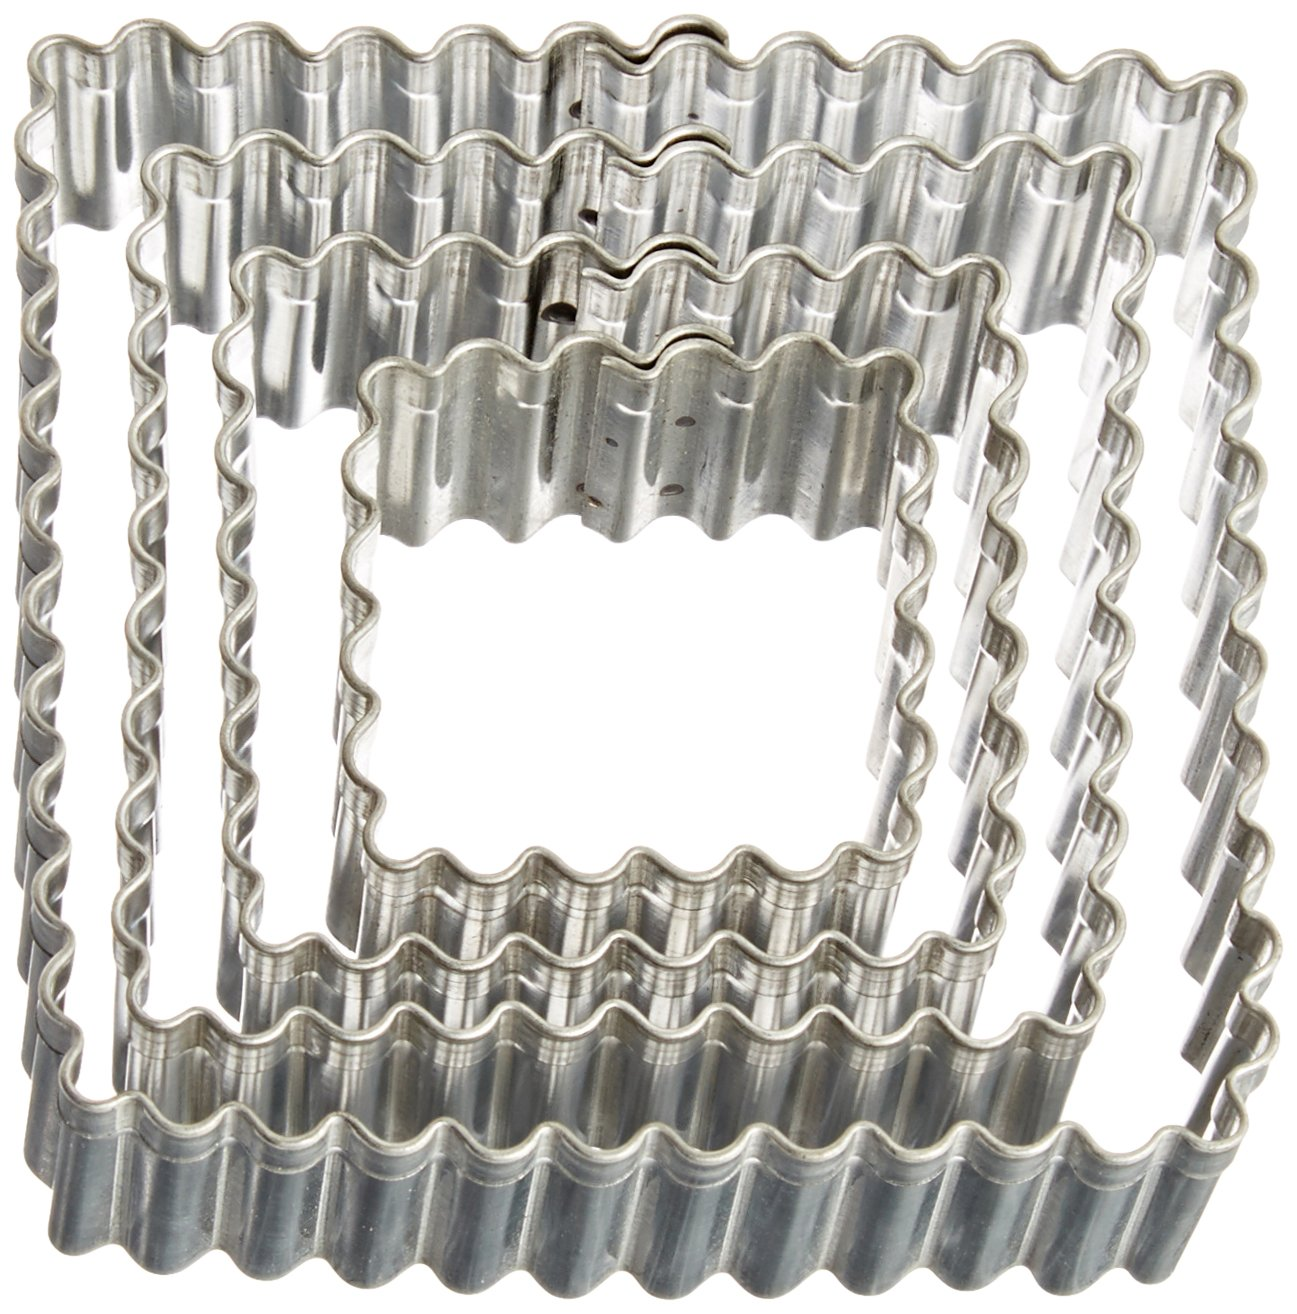 R/&M International 1879 Fluted Square Cookie and Biscuit Cutters Set of 4 Assorted Sizes Tinplated Steel